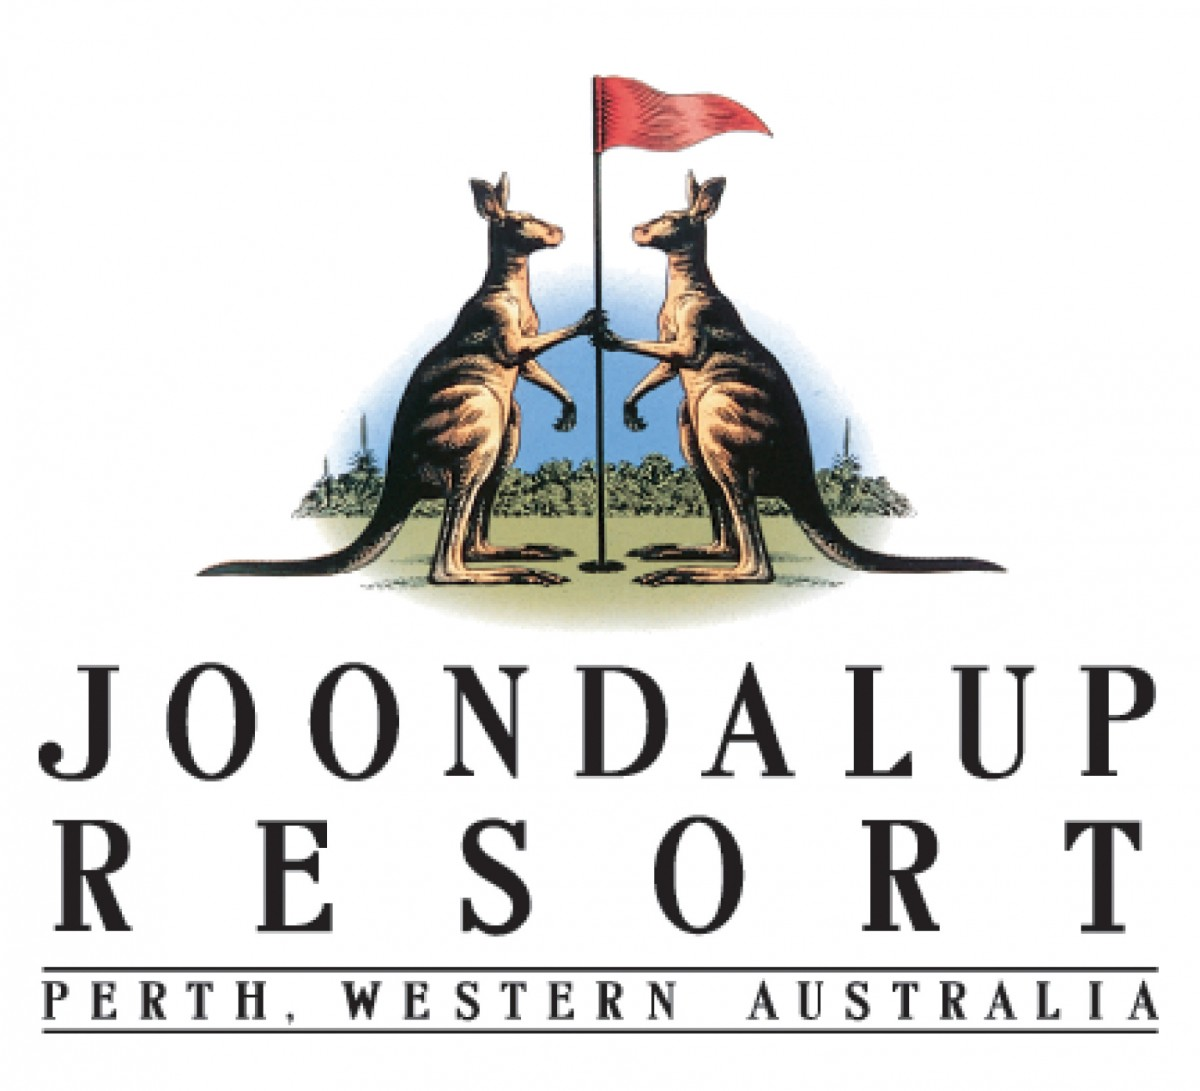 Joondalup Resort